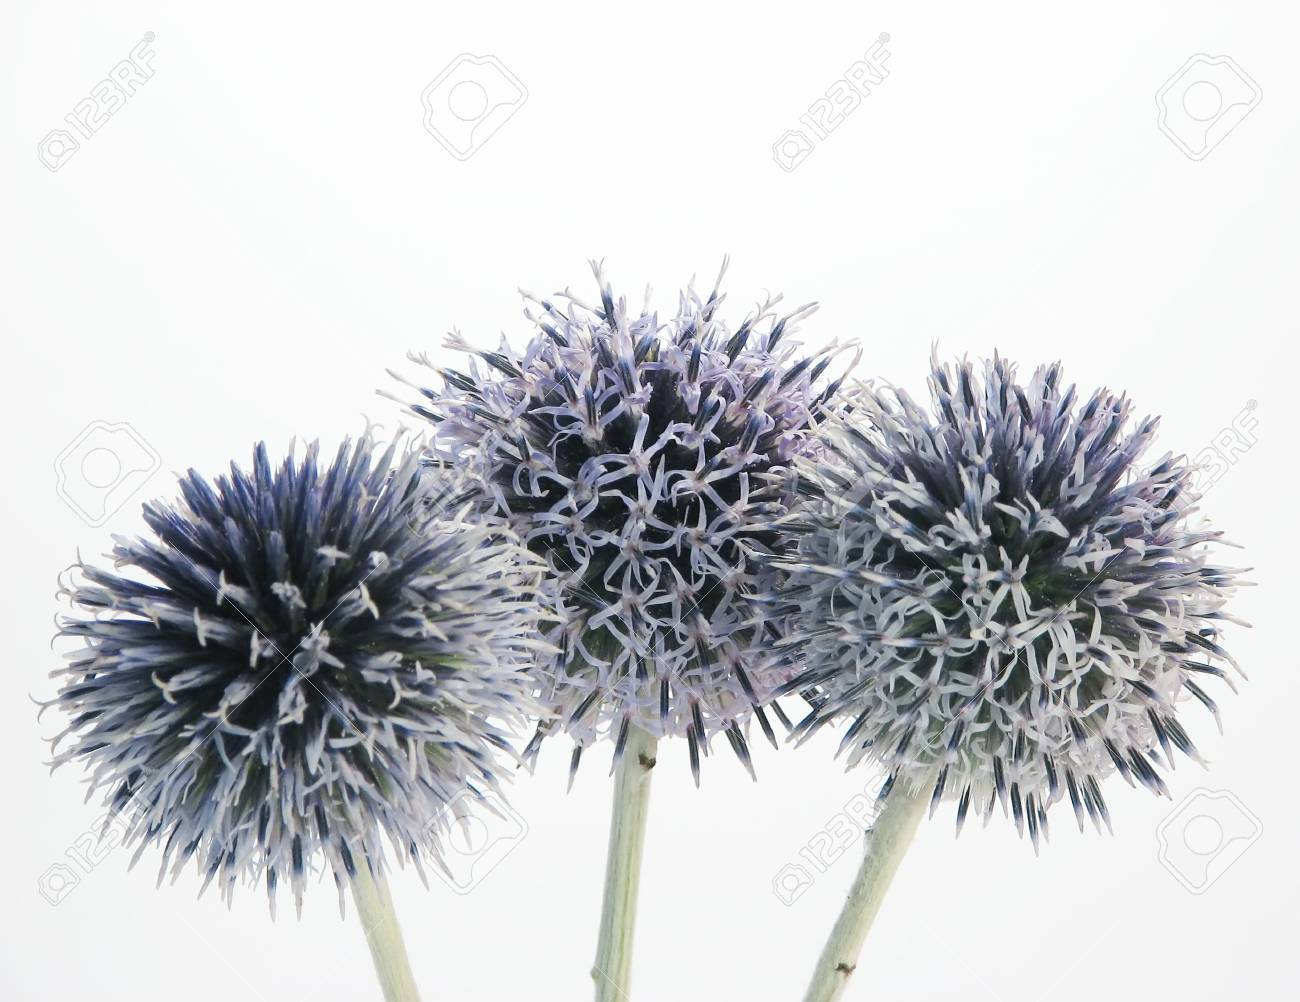 flora, nature composite : three blue thistly flowers on white background Stock Photo - 1534533